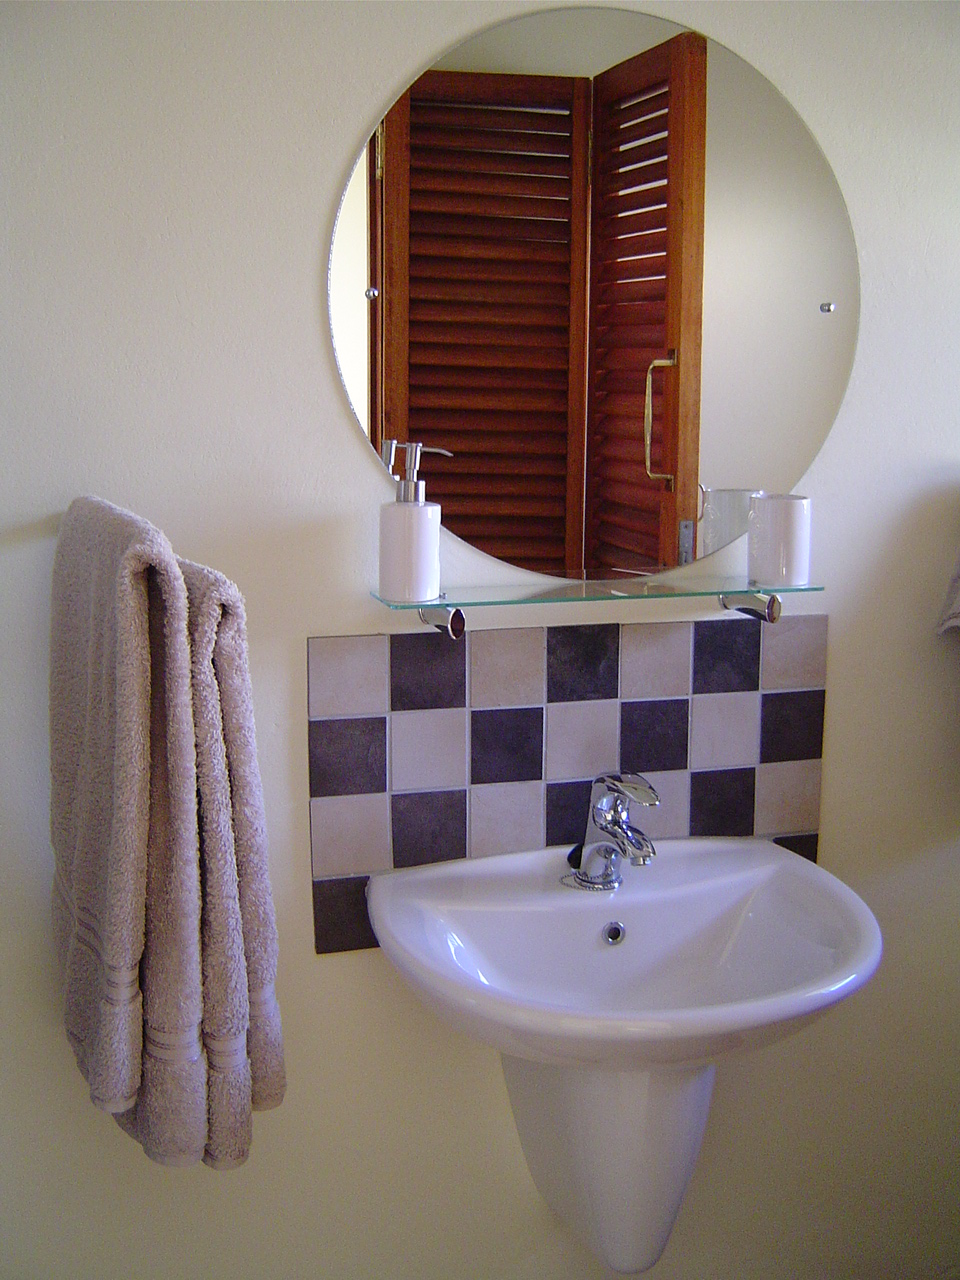 Bathroom in Umkomaas